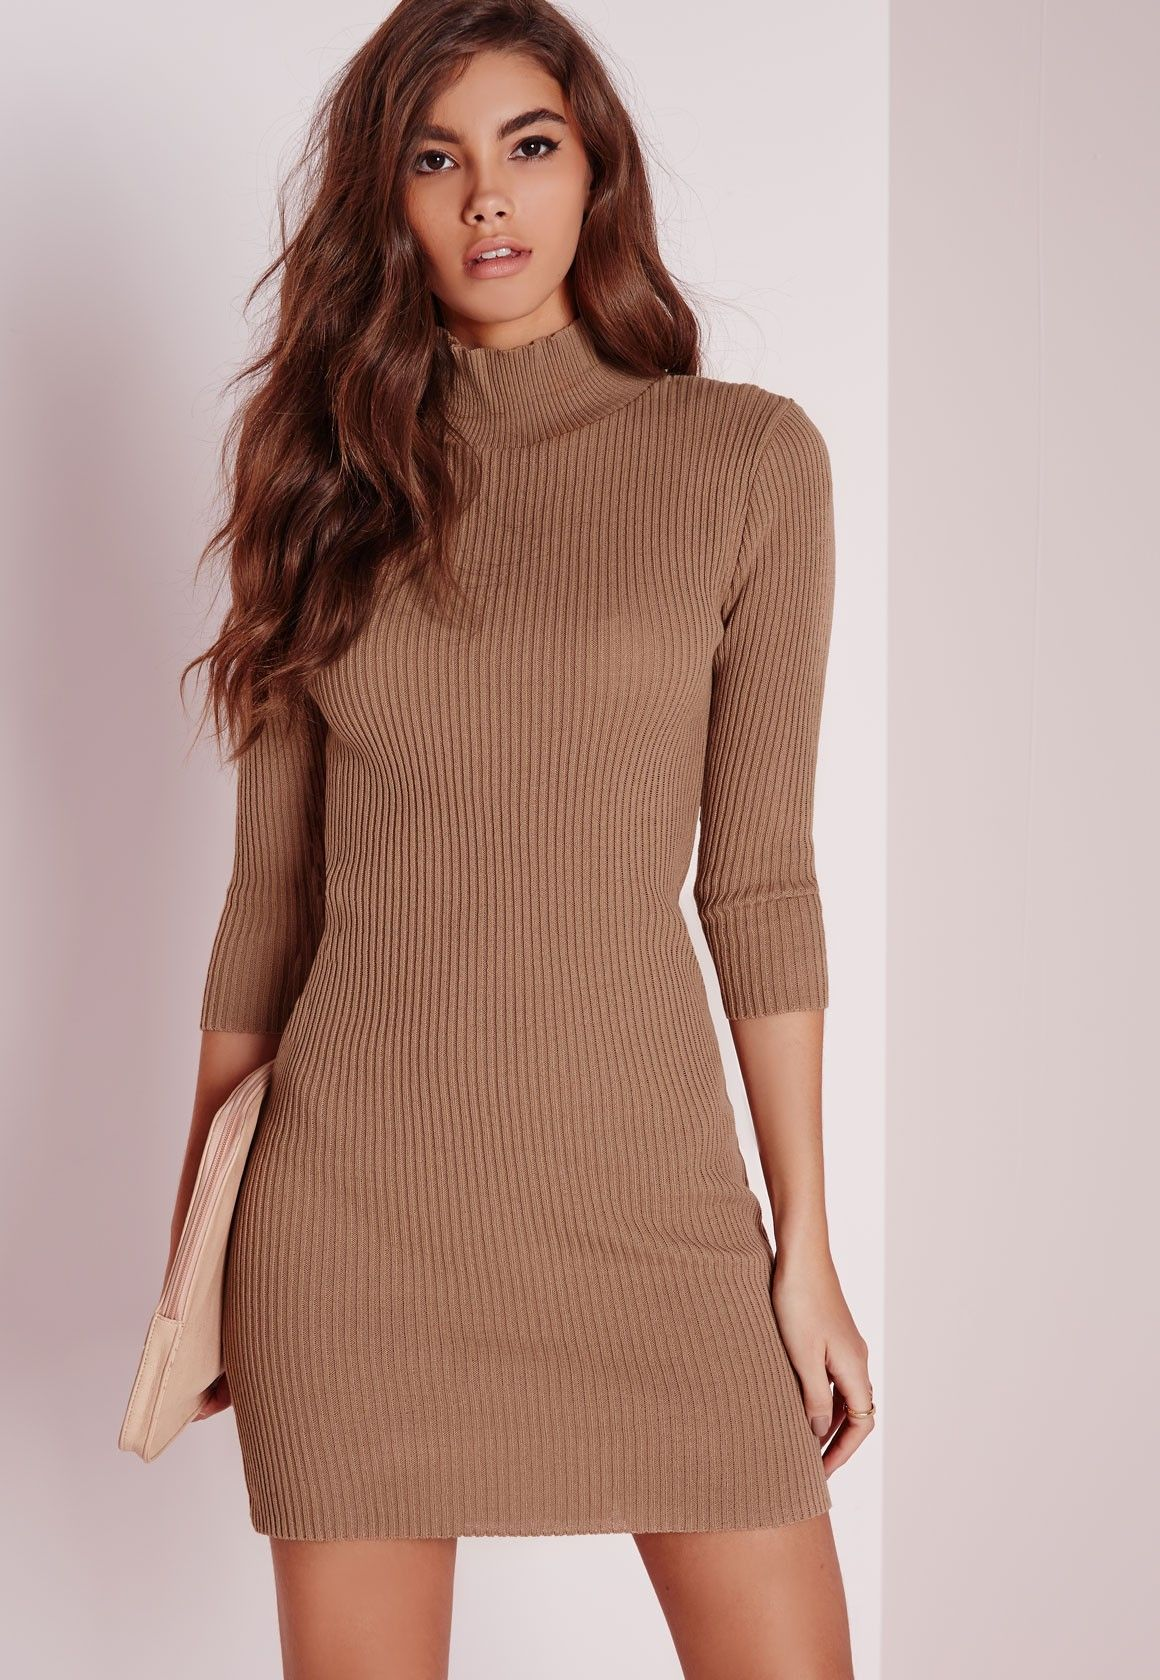 Missguided - Mini Turtle Neck Sweater Dress Nude 42.50  8c813fb33939e